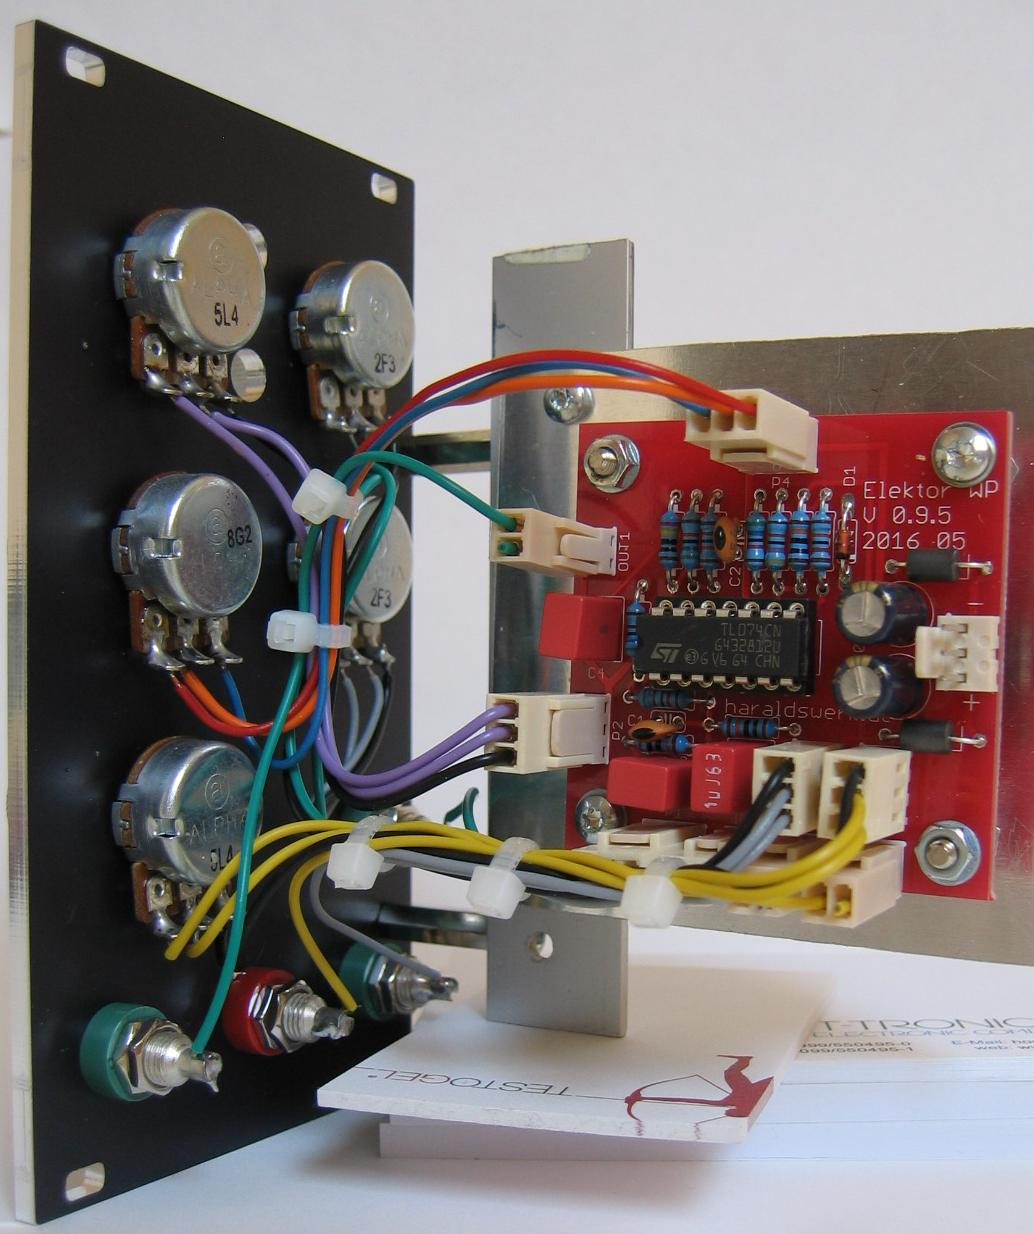 NGF Project: Elektor Wave Processor, rear view